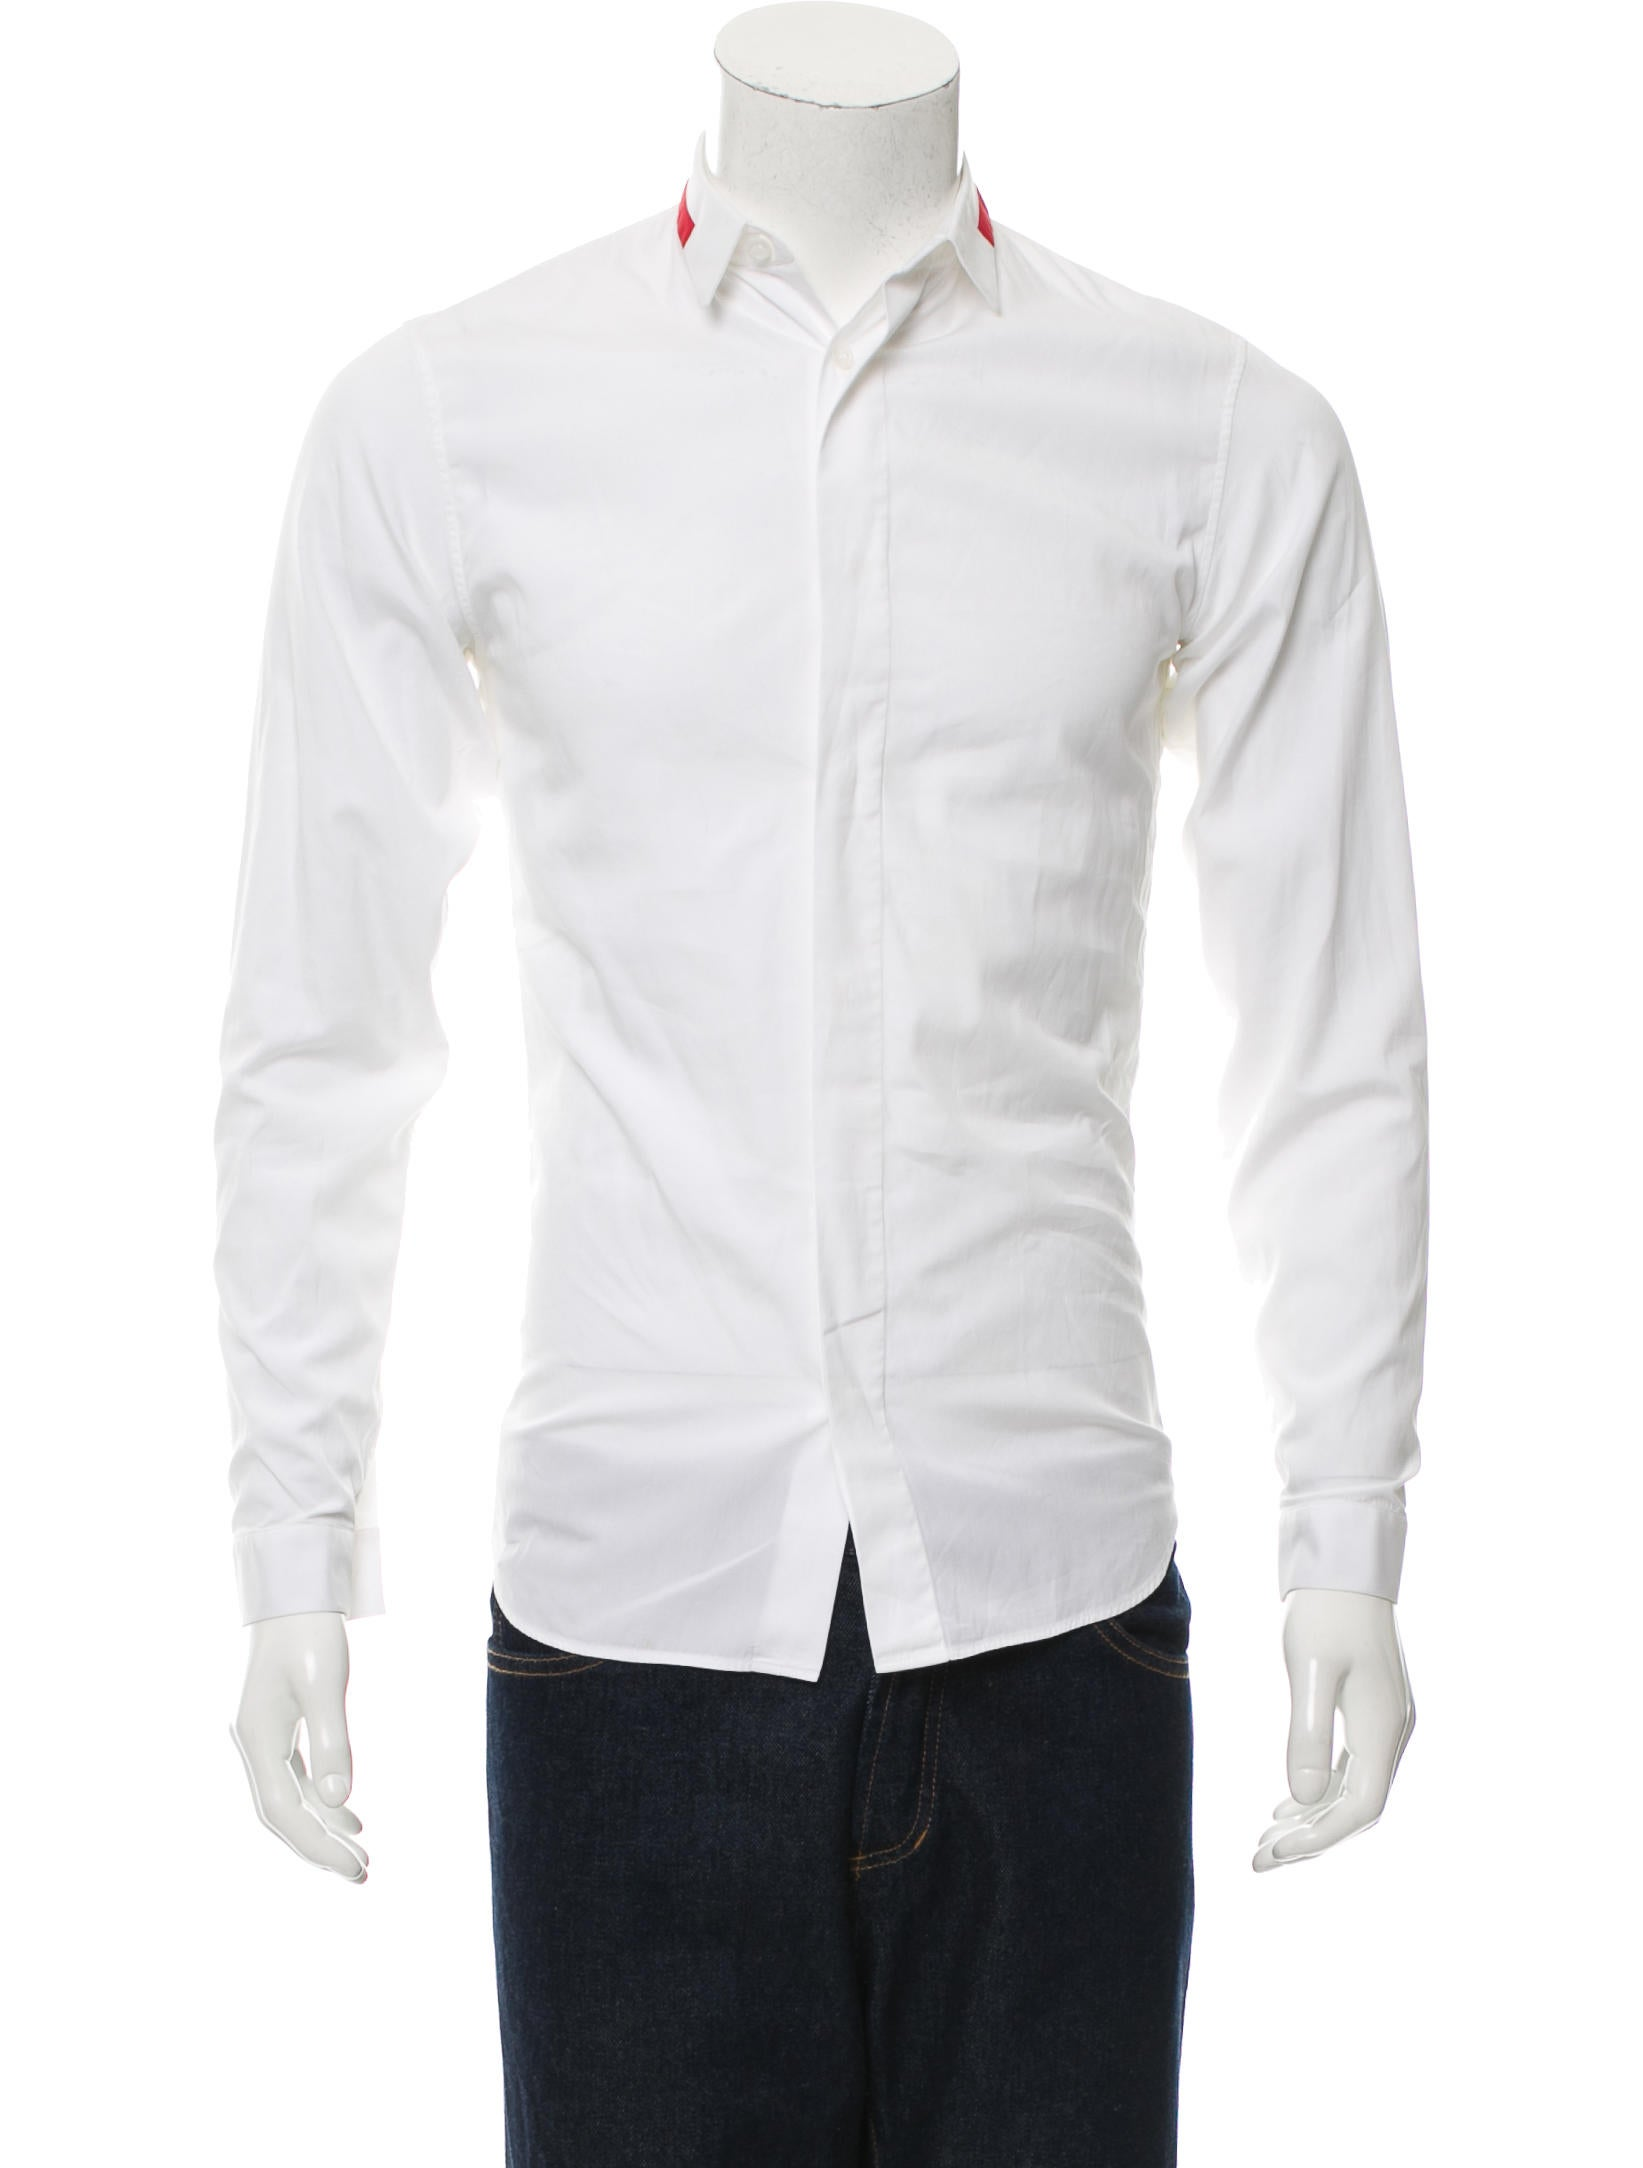 Dior homme long sleeve button up shirt clothing for Christian dior button up shirt